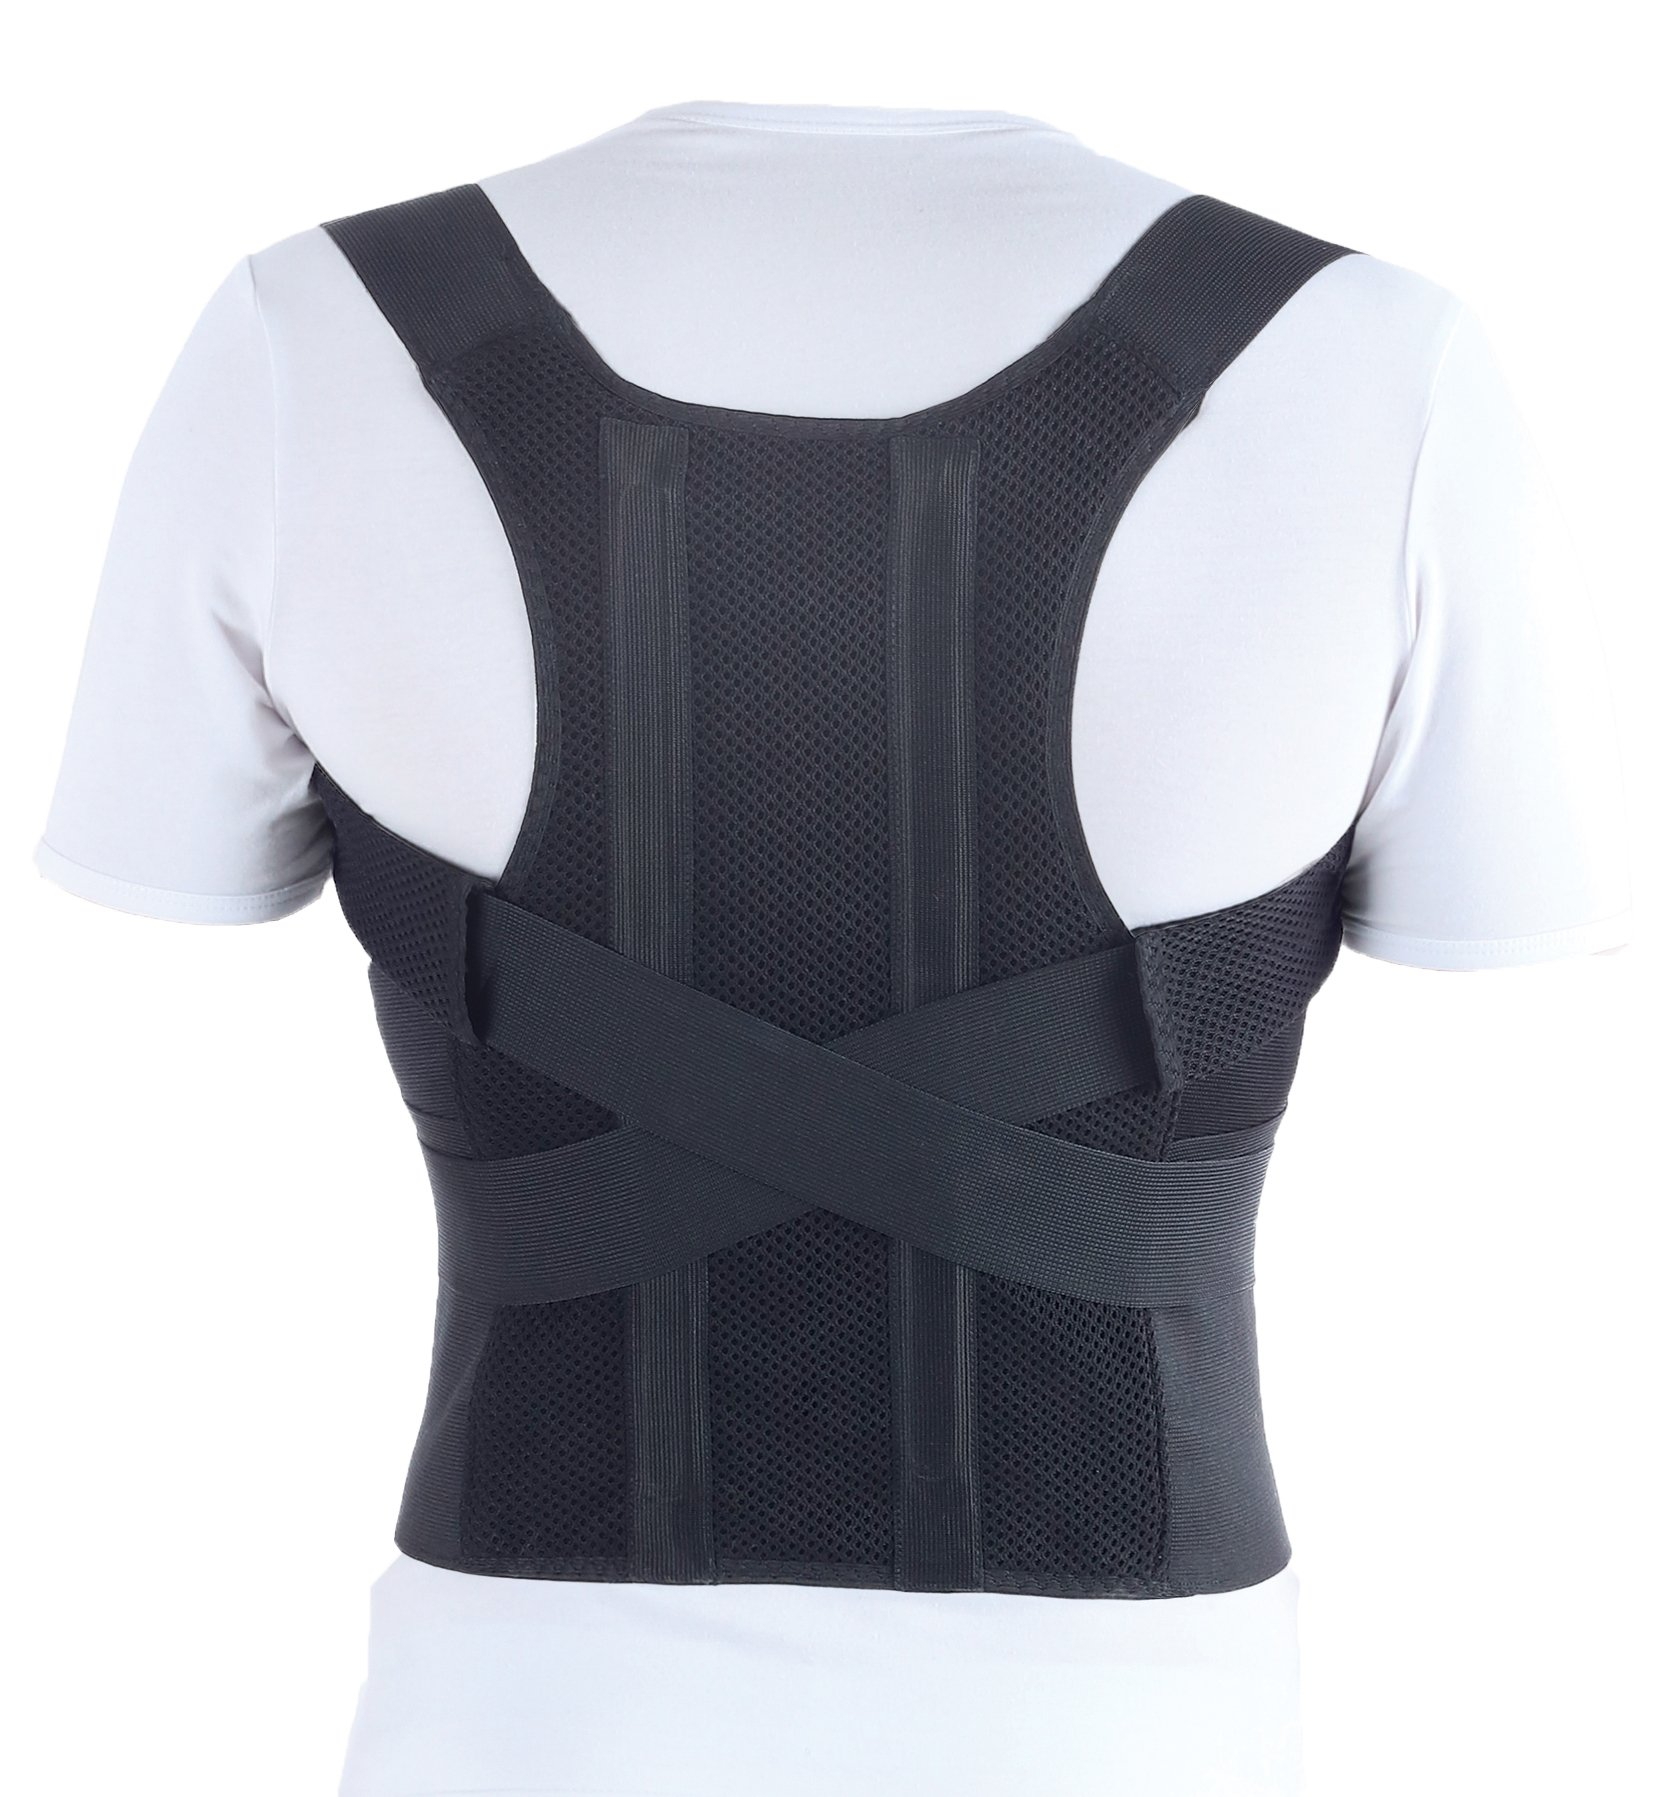 TOROS-GROUP Comfort Posture Corrector Brace/100%-Cotton Liner, Waist/Belly 40'' - 43 1/2'', X-Large, Black by TOROS-GROUP